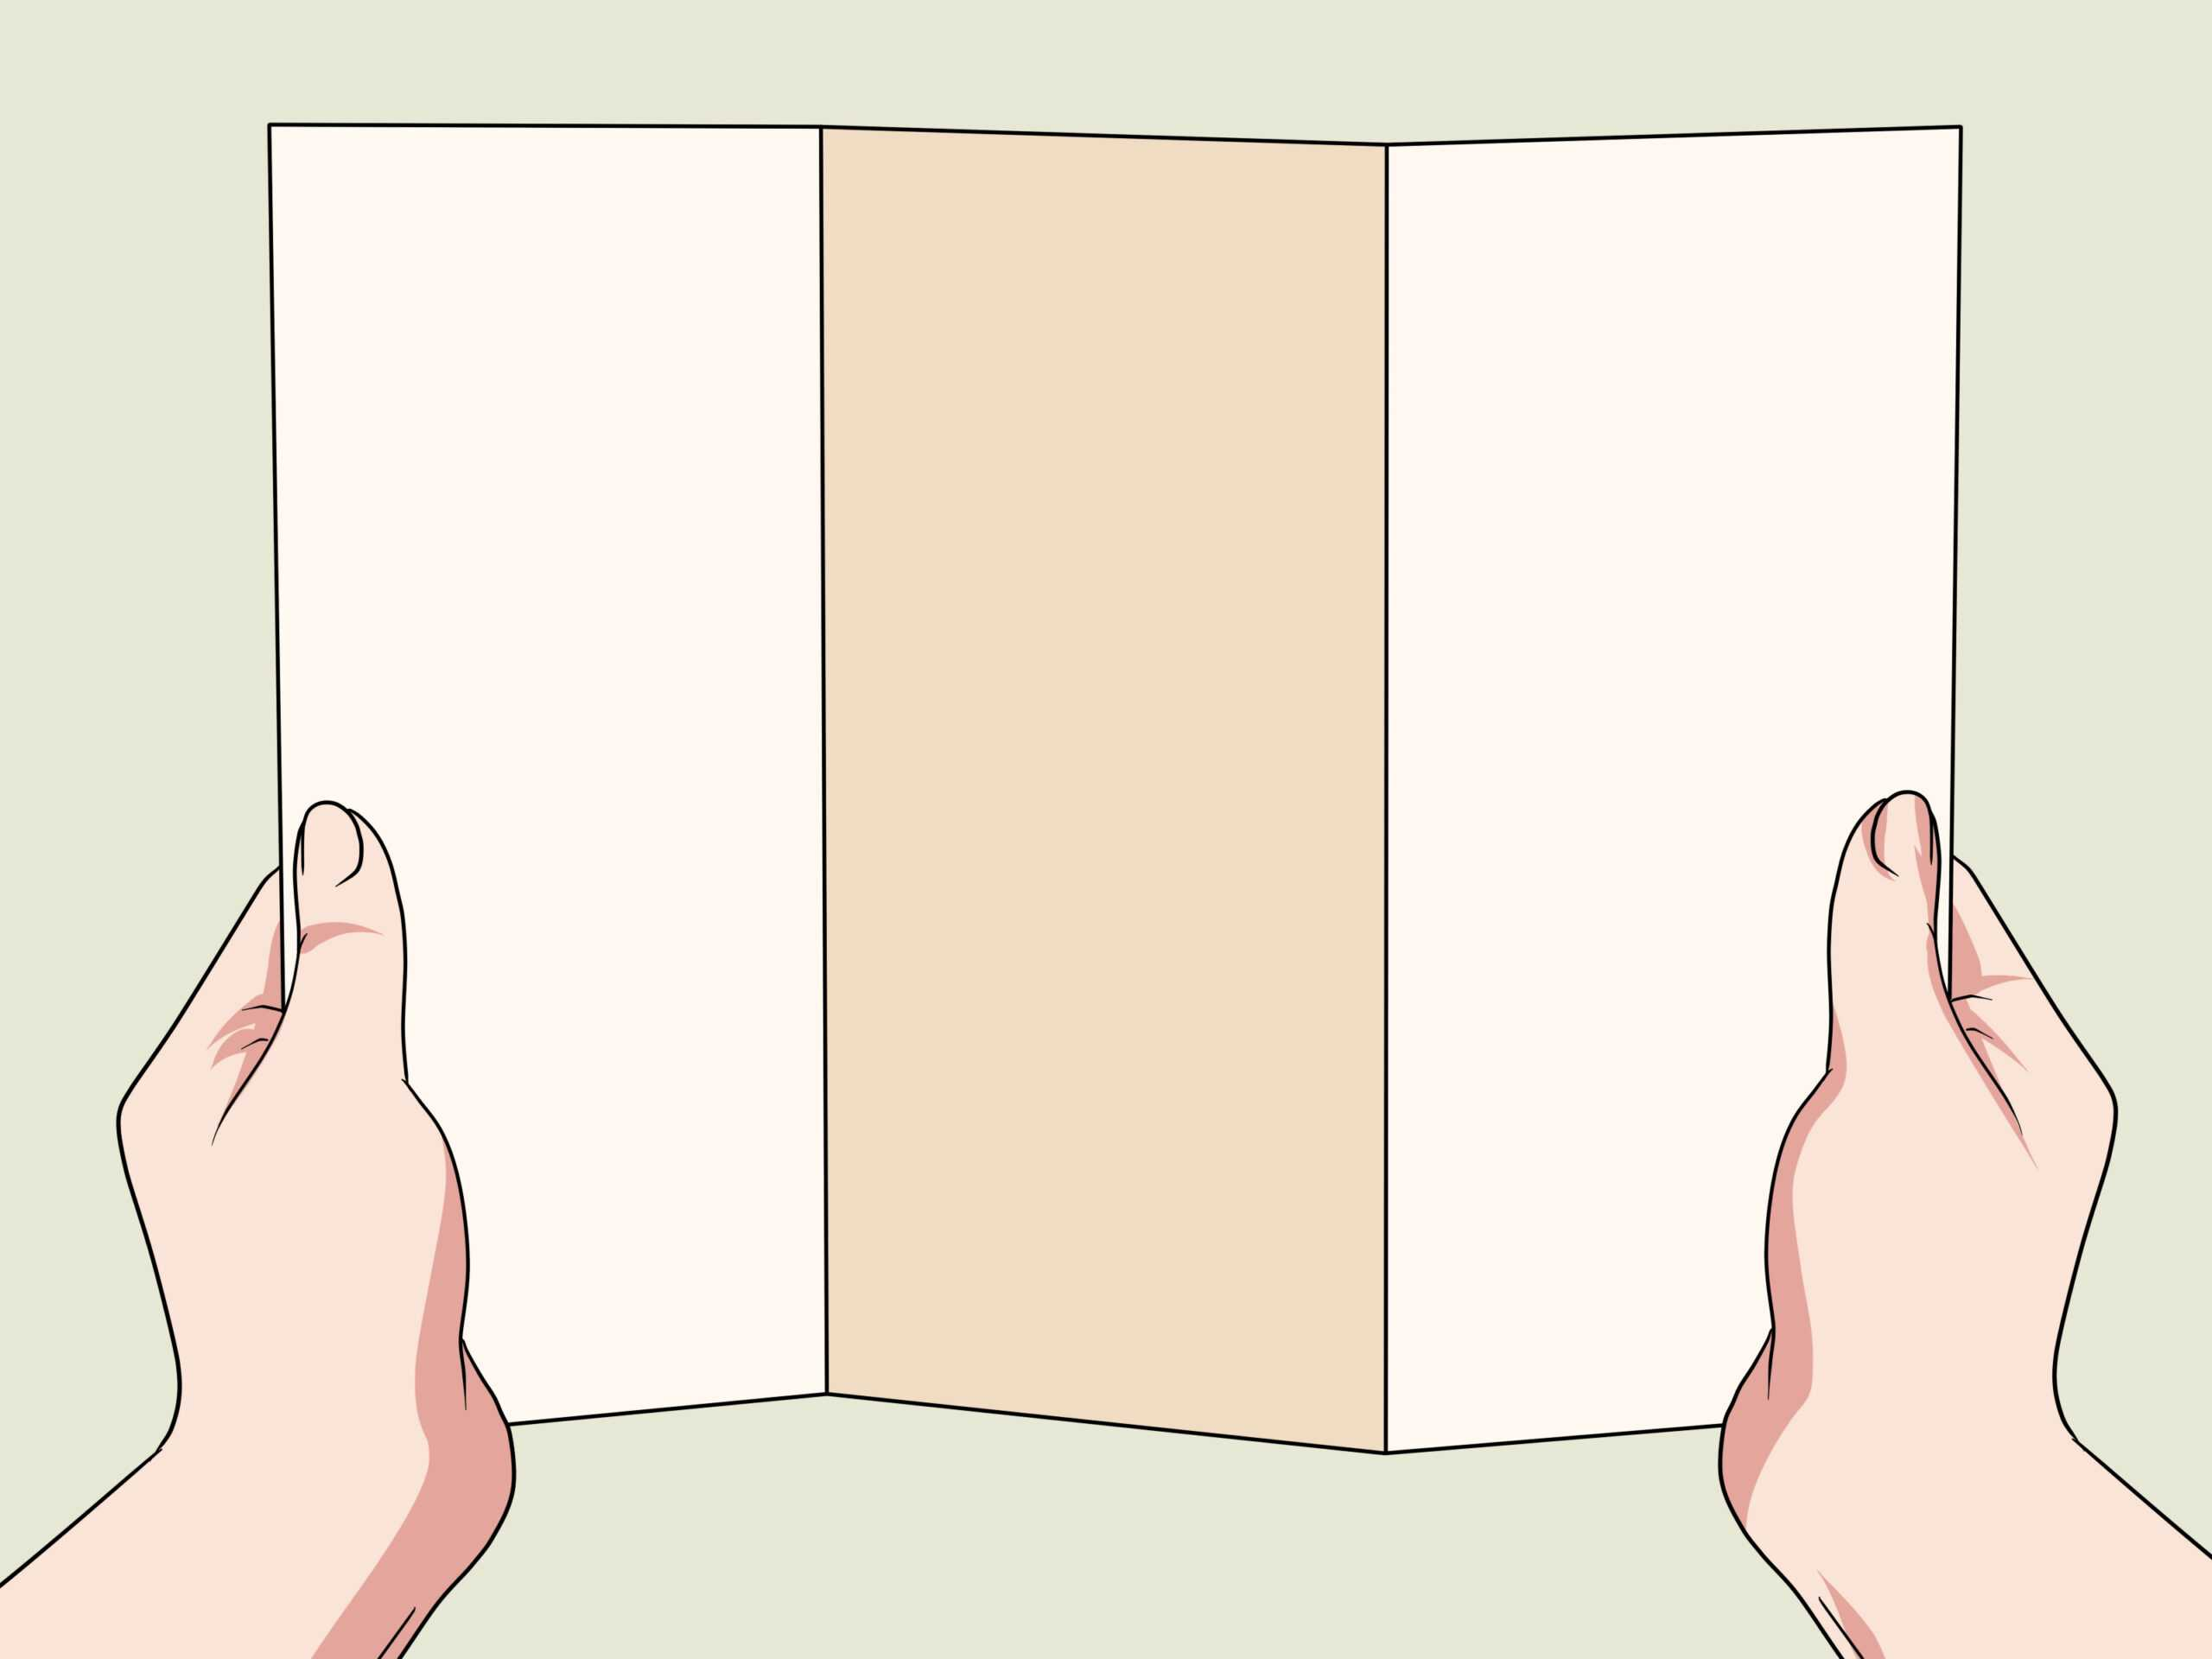 3 Ways To Make A Brochure For A School Project - Wikihow Pertaining To Brochure Templates For School Project